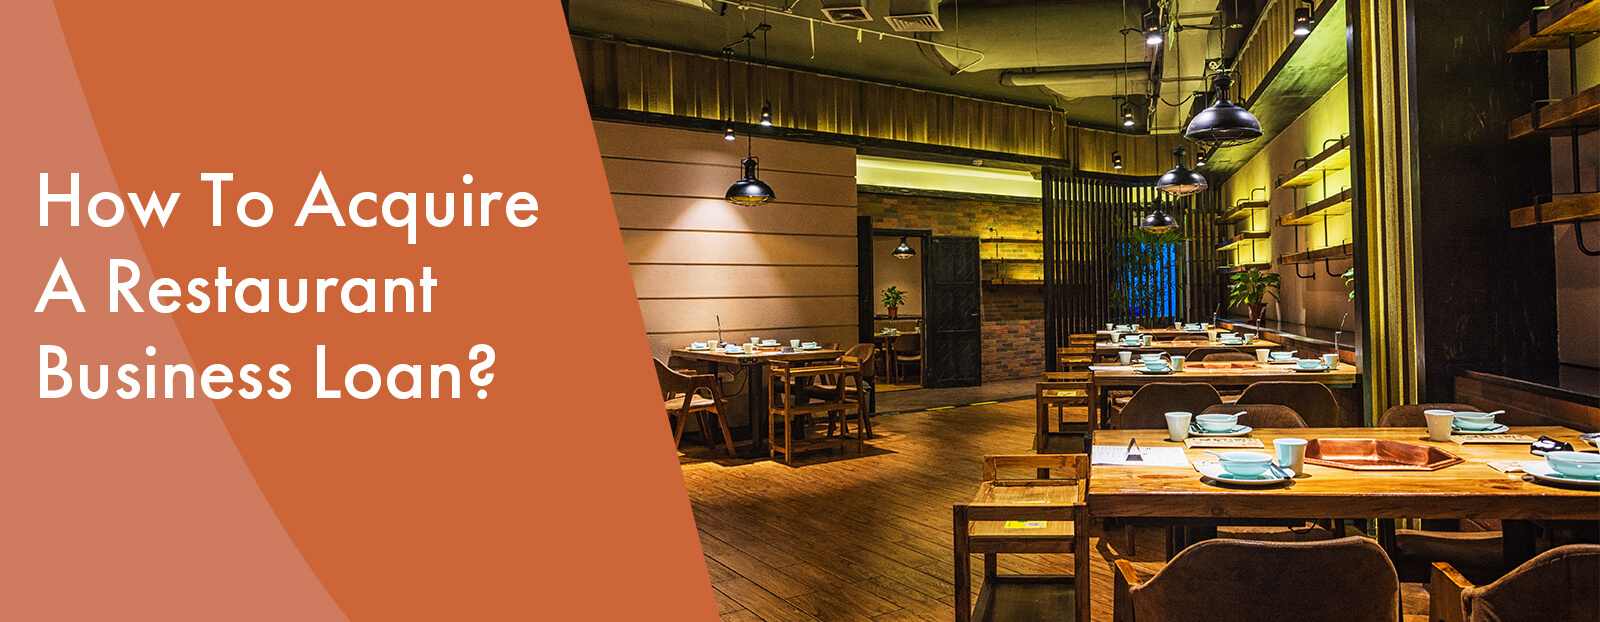 How To Acquire A Restaurant Business Loan?